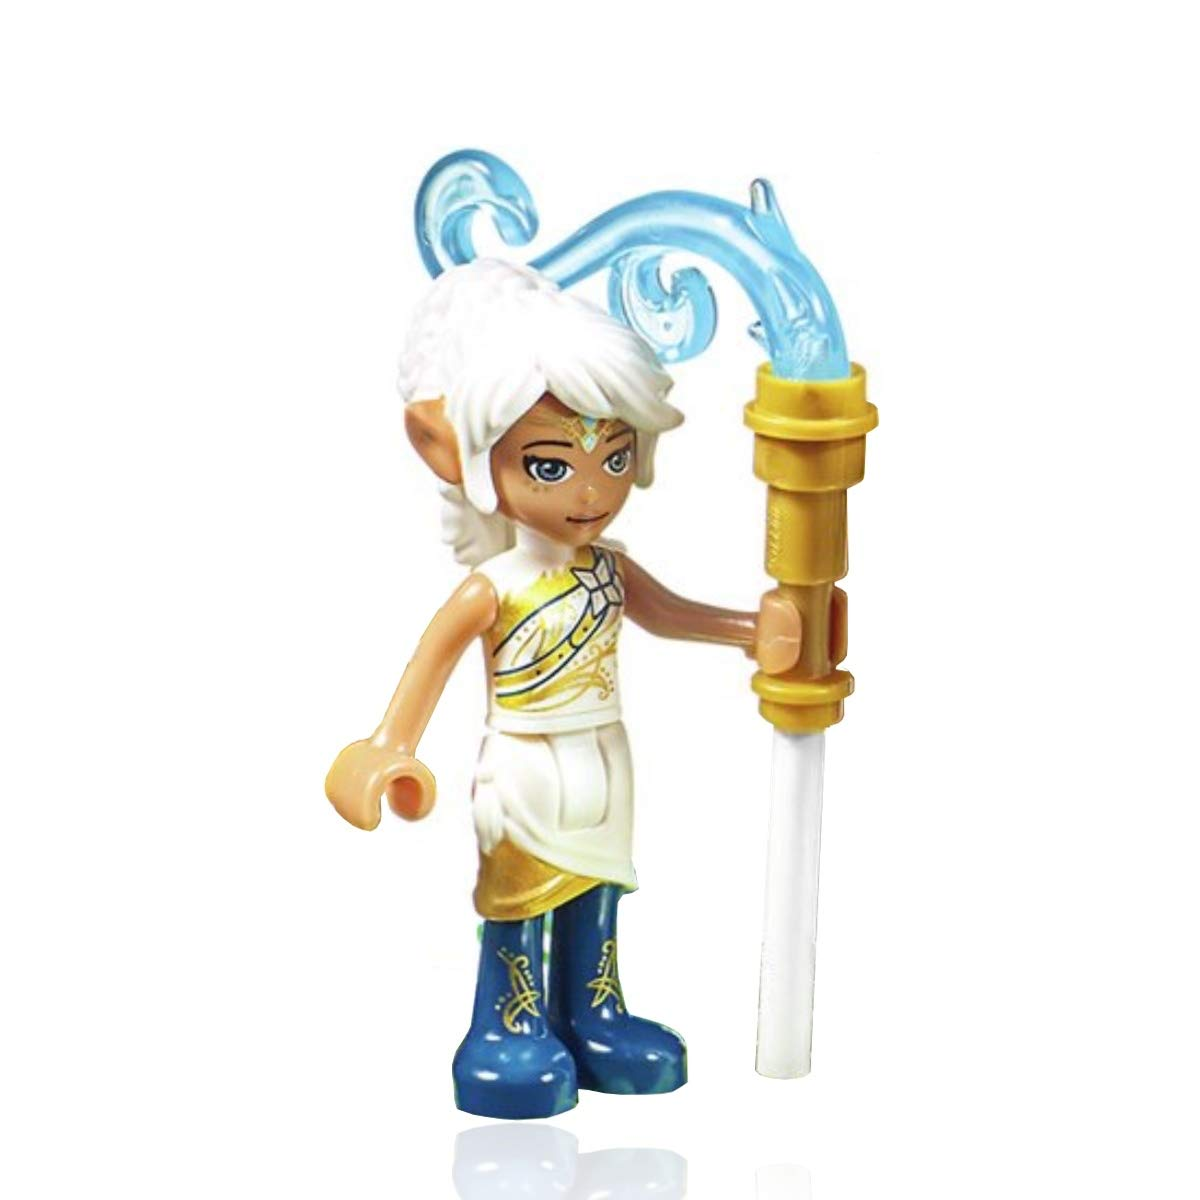 LEGO Elves Minifigure Set 41193 with Power-up Staff Lumia